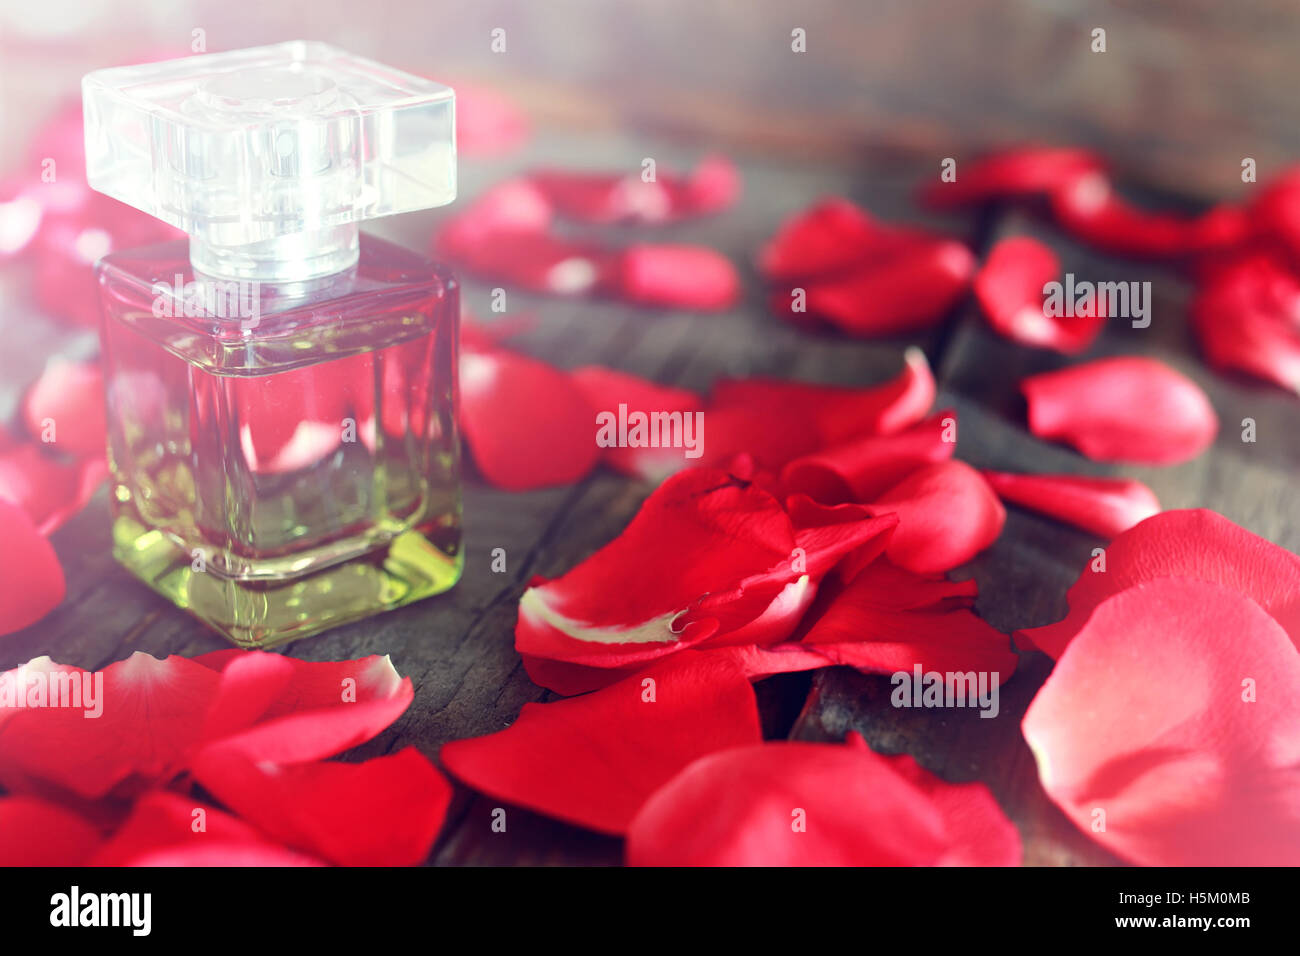 rose perfume bottle and petal - Stock Image